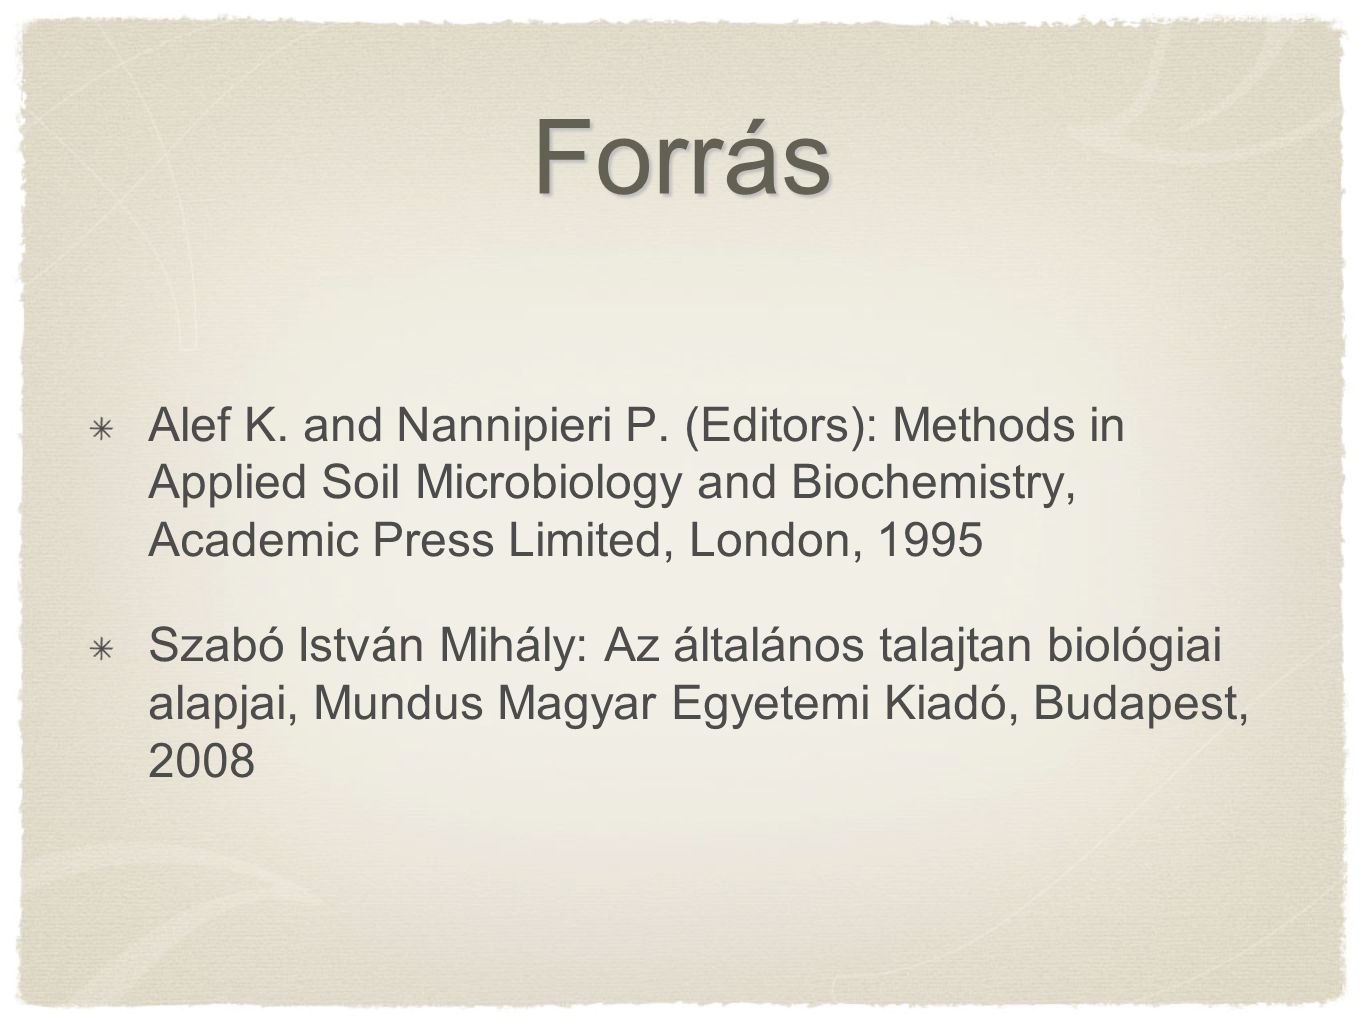 Forrás Alef K. and Nannipieri P. (Editors): Methods in Applied Soil Microbiology and Biochemistry, Academic Press Limited, London, 1995.